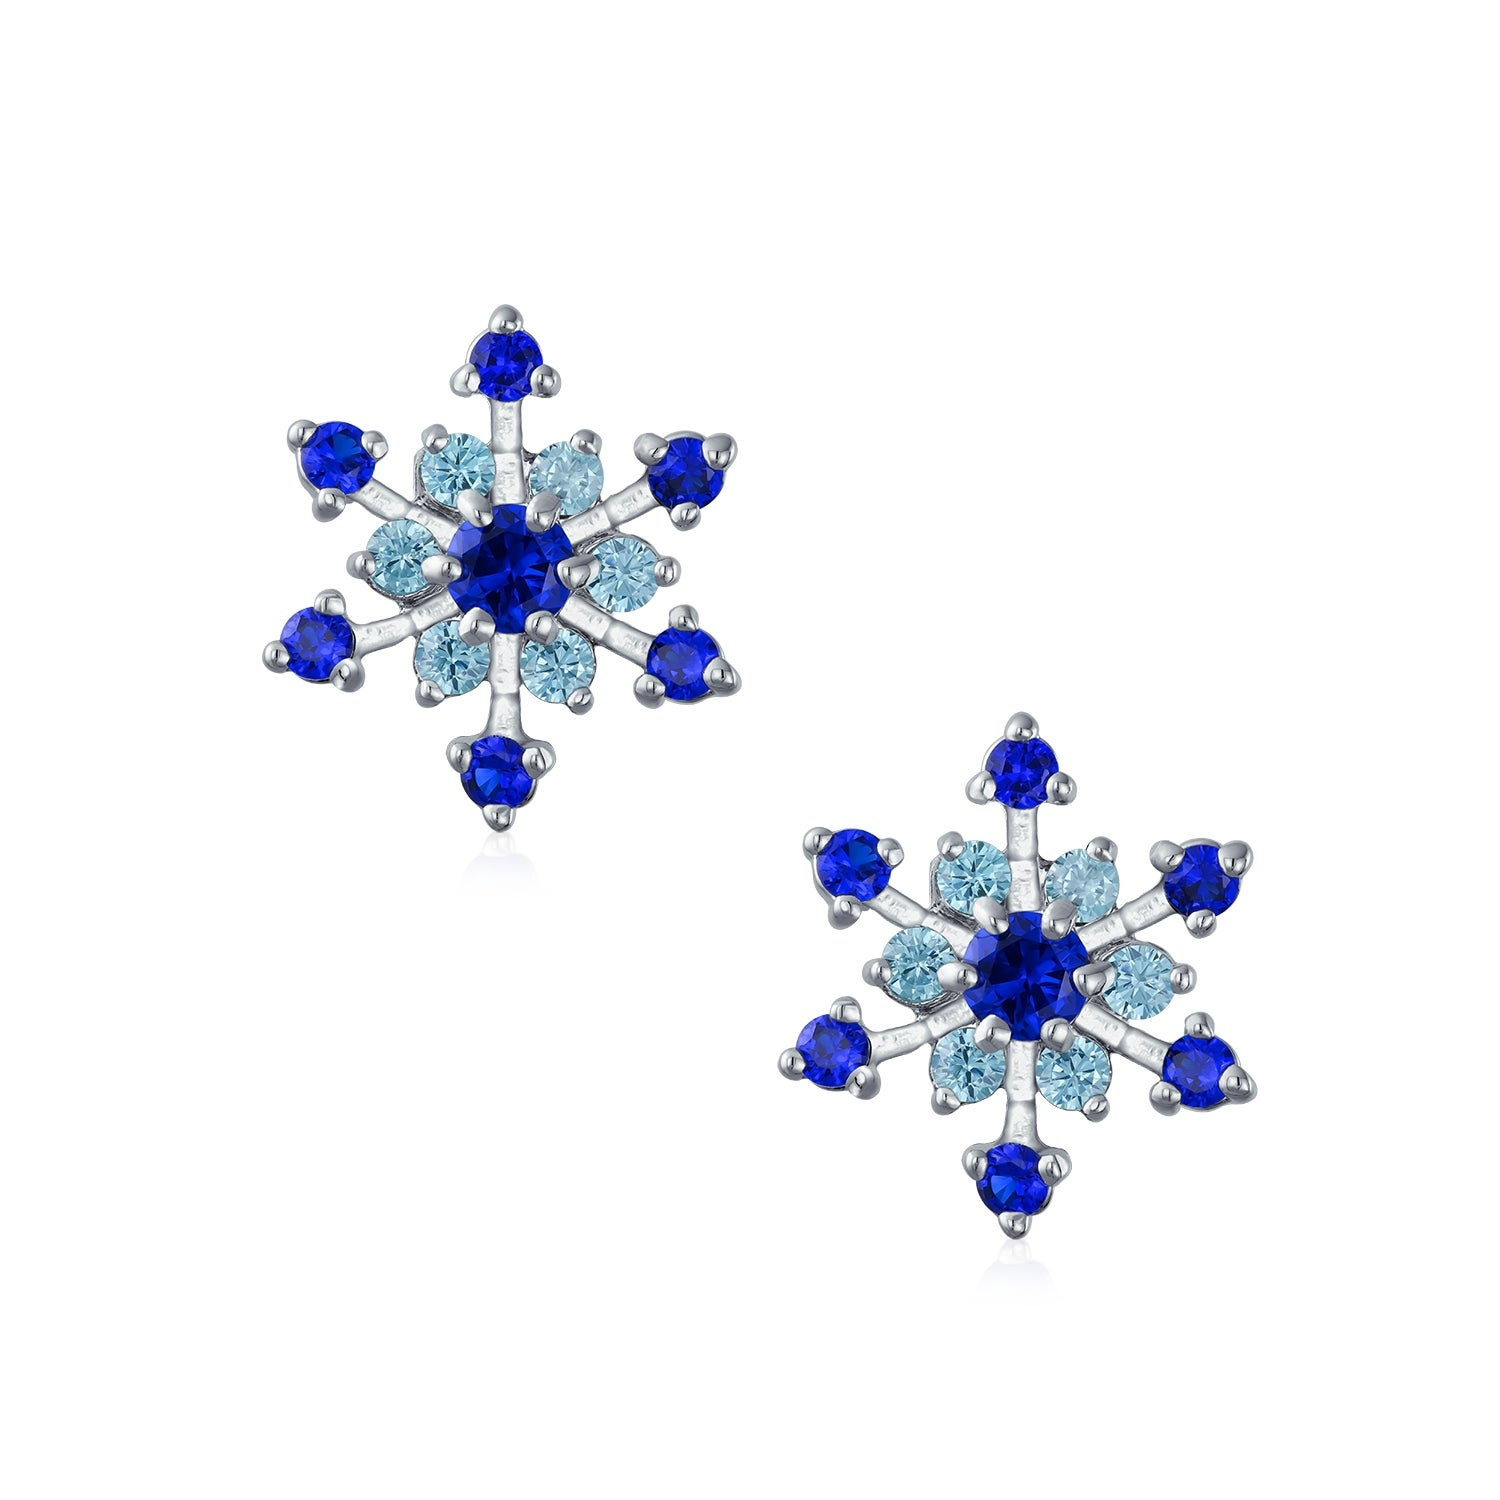 d51406d70 Shop Christmas Holiday CZ Royal Blue Aqua Cubic Zirconia Star Snowflake  Stud Clip On Earrings No Piercing Silver Plated Brass - Free Shipping On  Orders Over ...